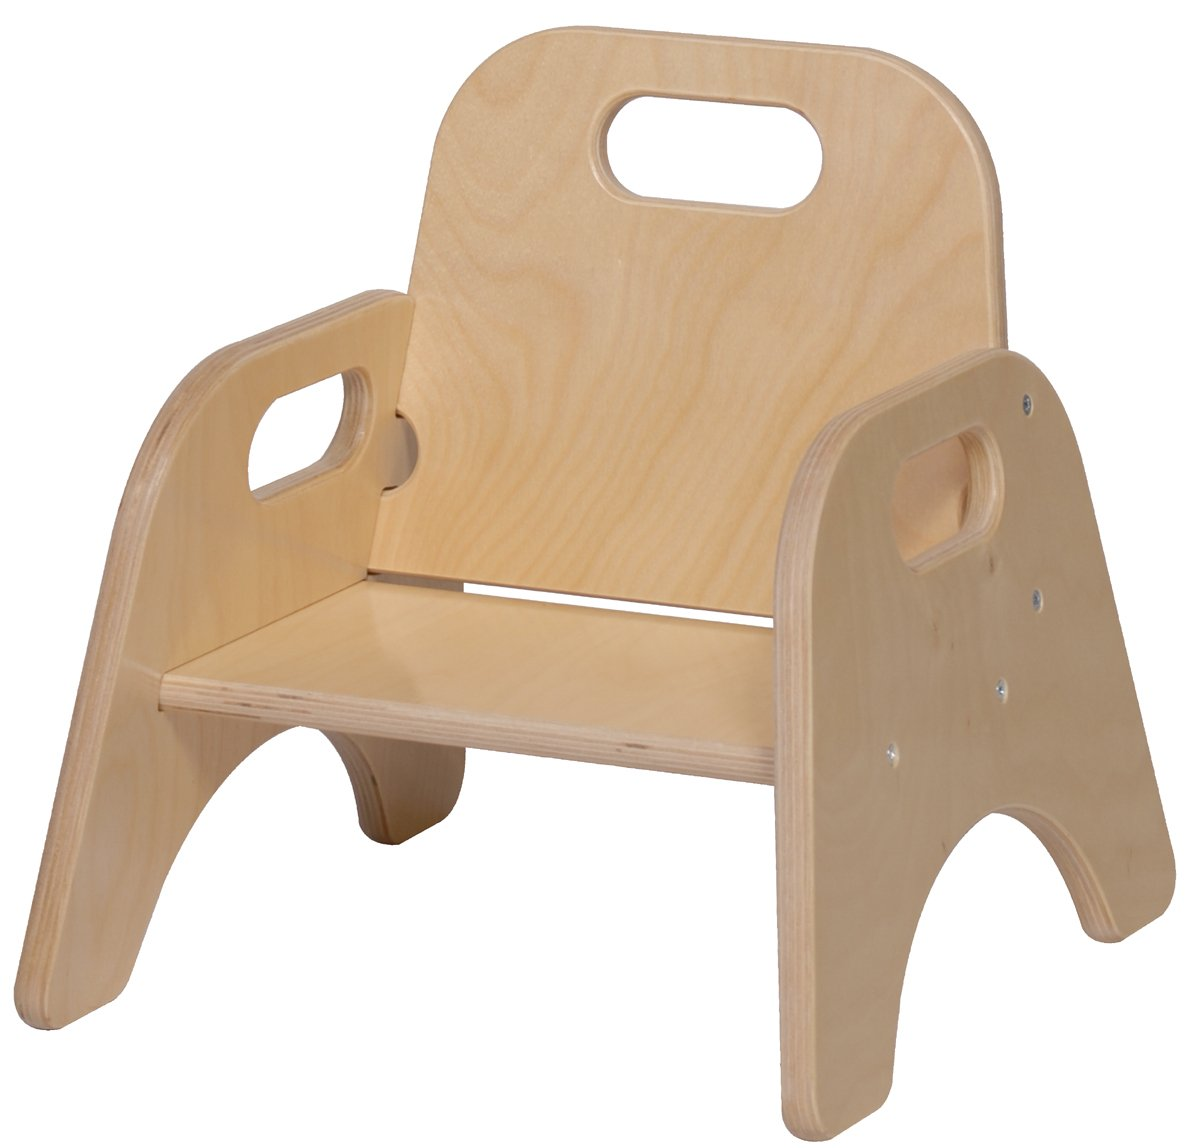 Steffy Wood Products 5-Inch Toddler Chair by Steffy Wood Products, Inc.